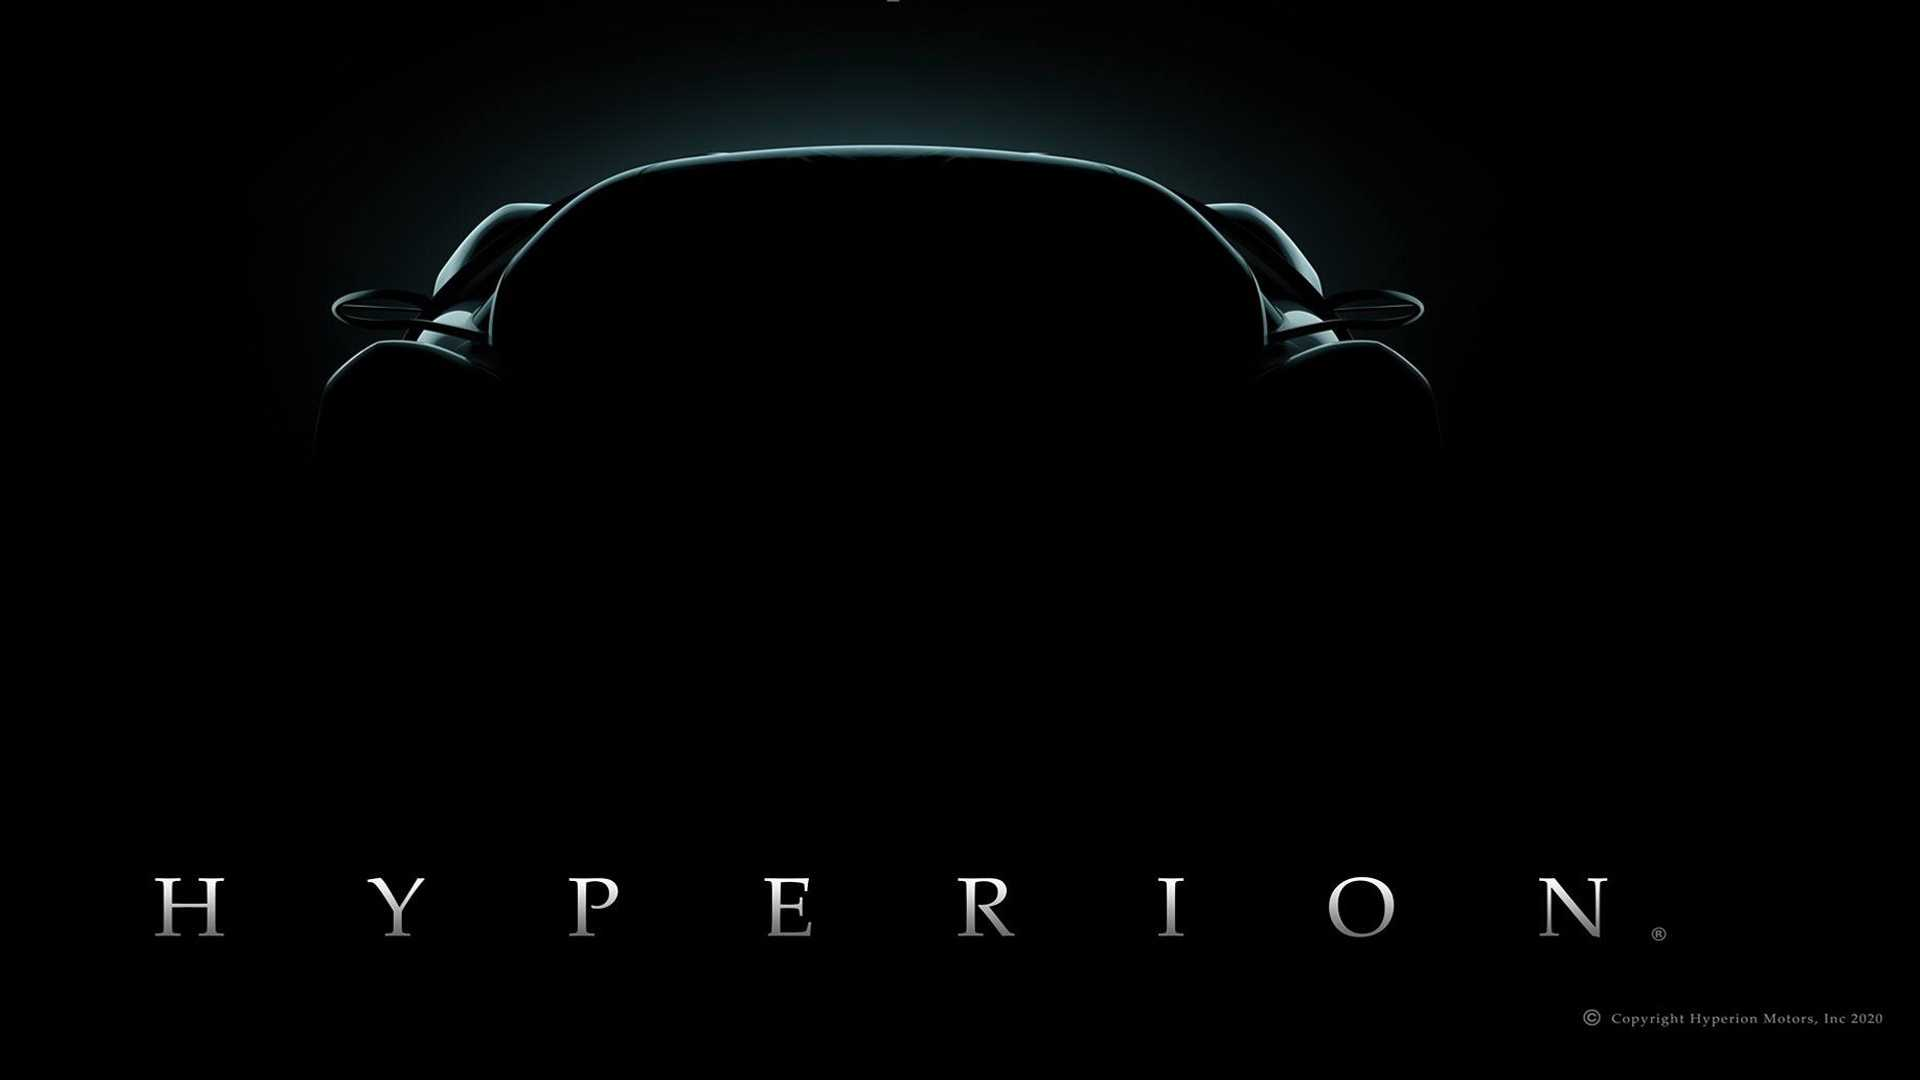 Hyperion teases high-performance hydrogen car, debut 'coming soon'